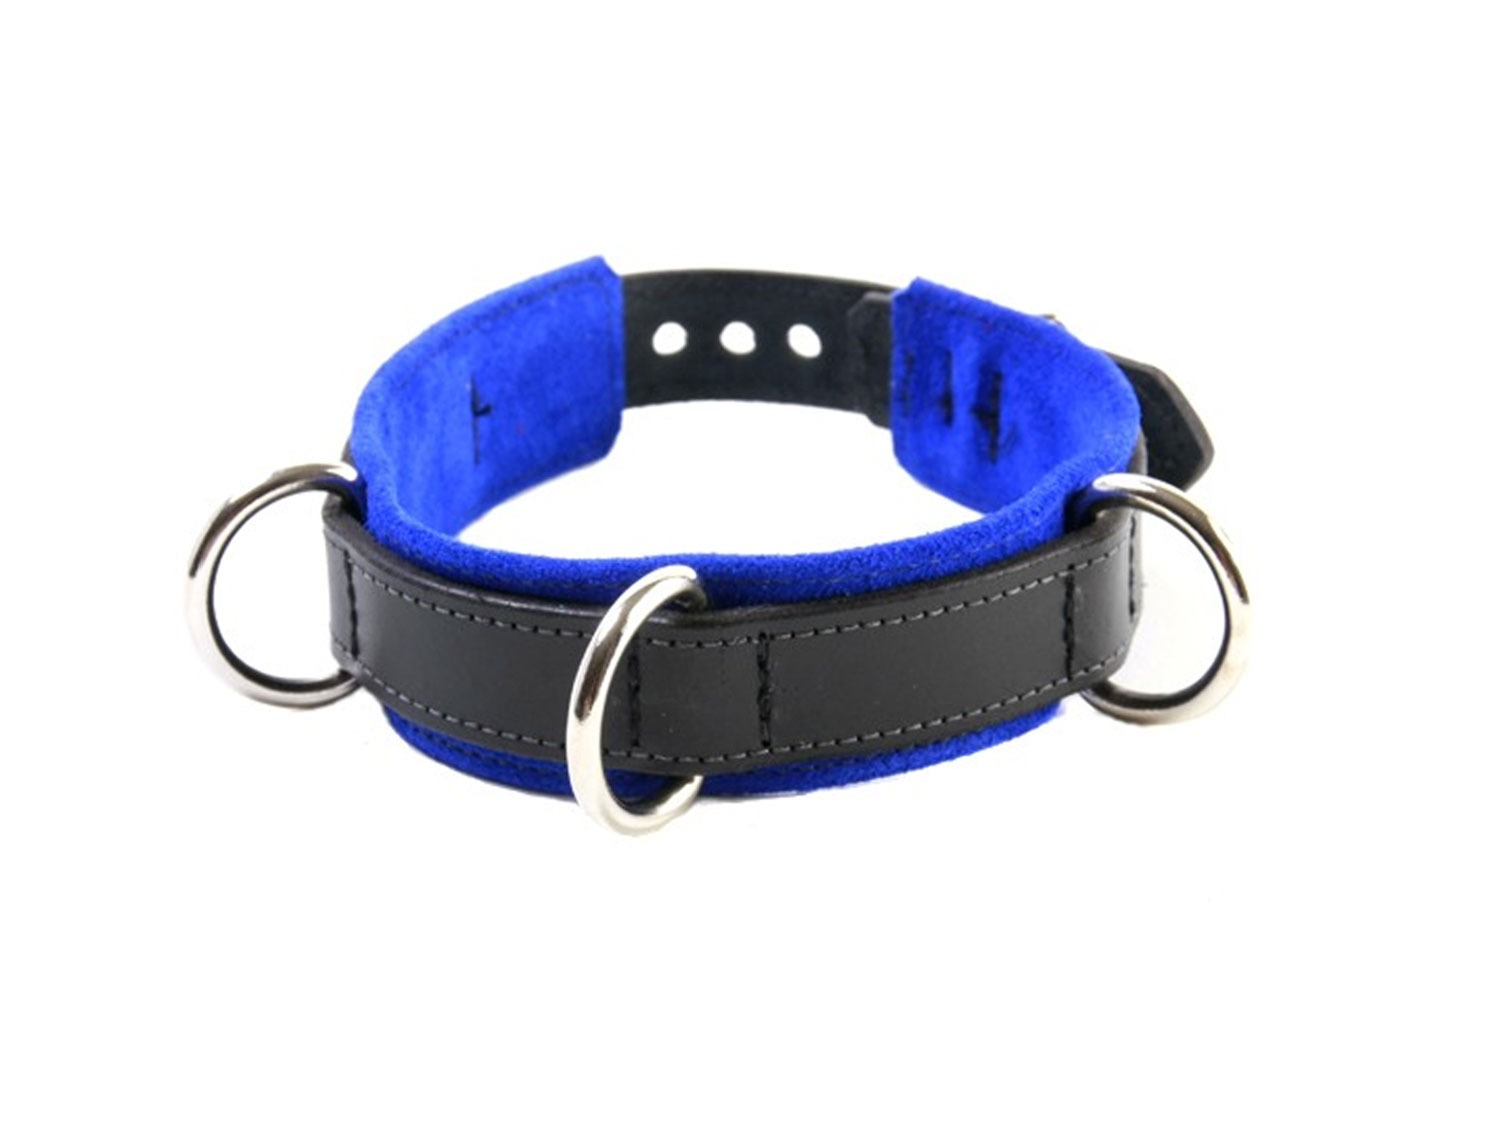 restrictive training bondage collar blue